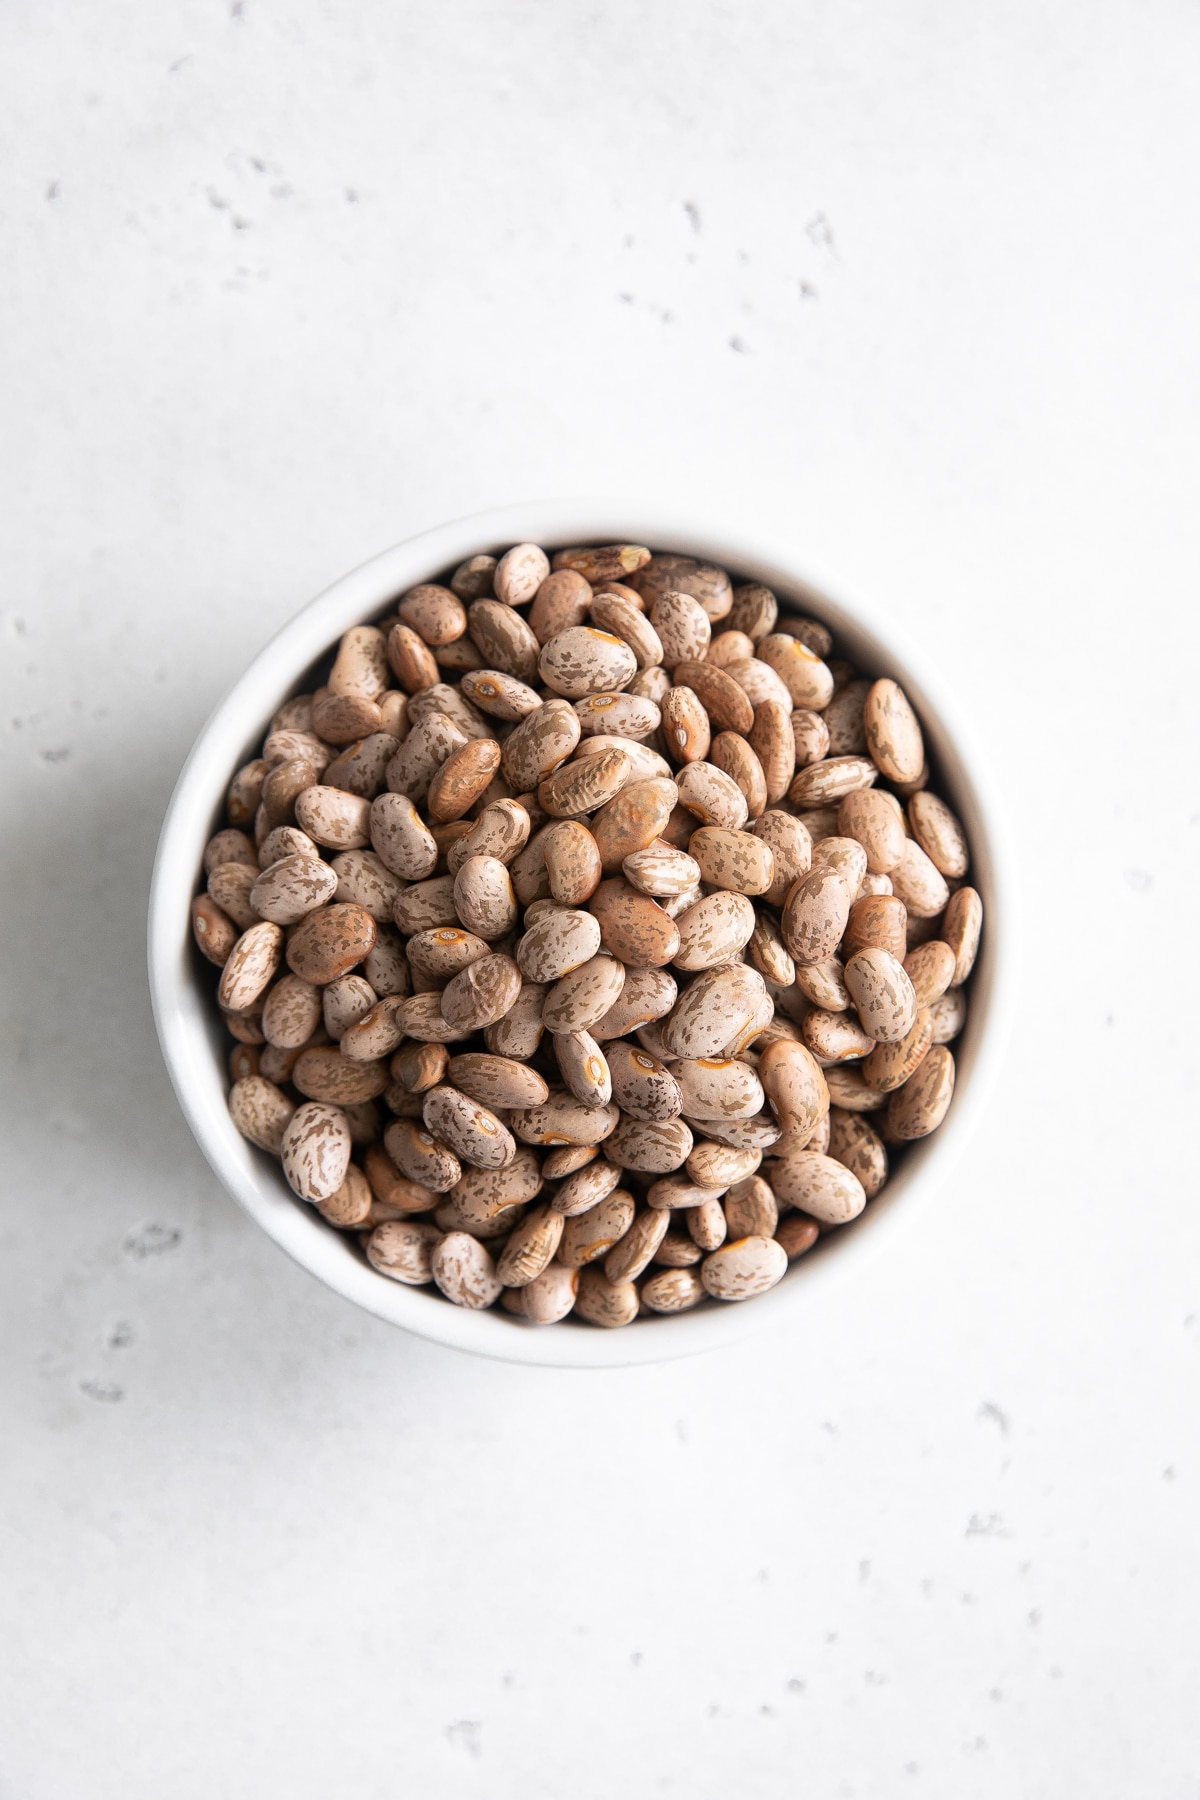 Image of dry pinto beans in a small white ramekin.